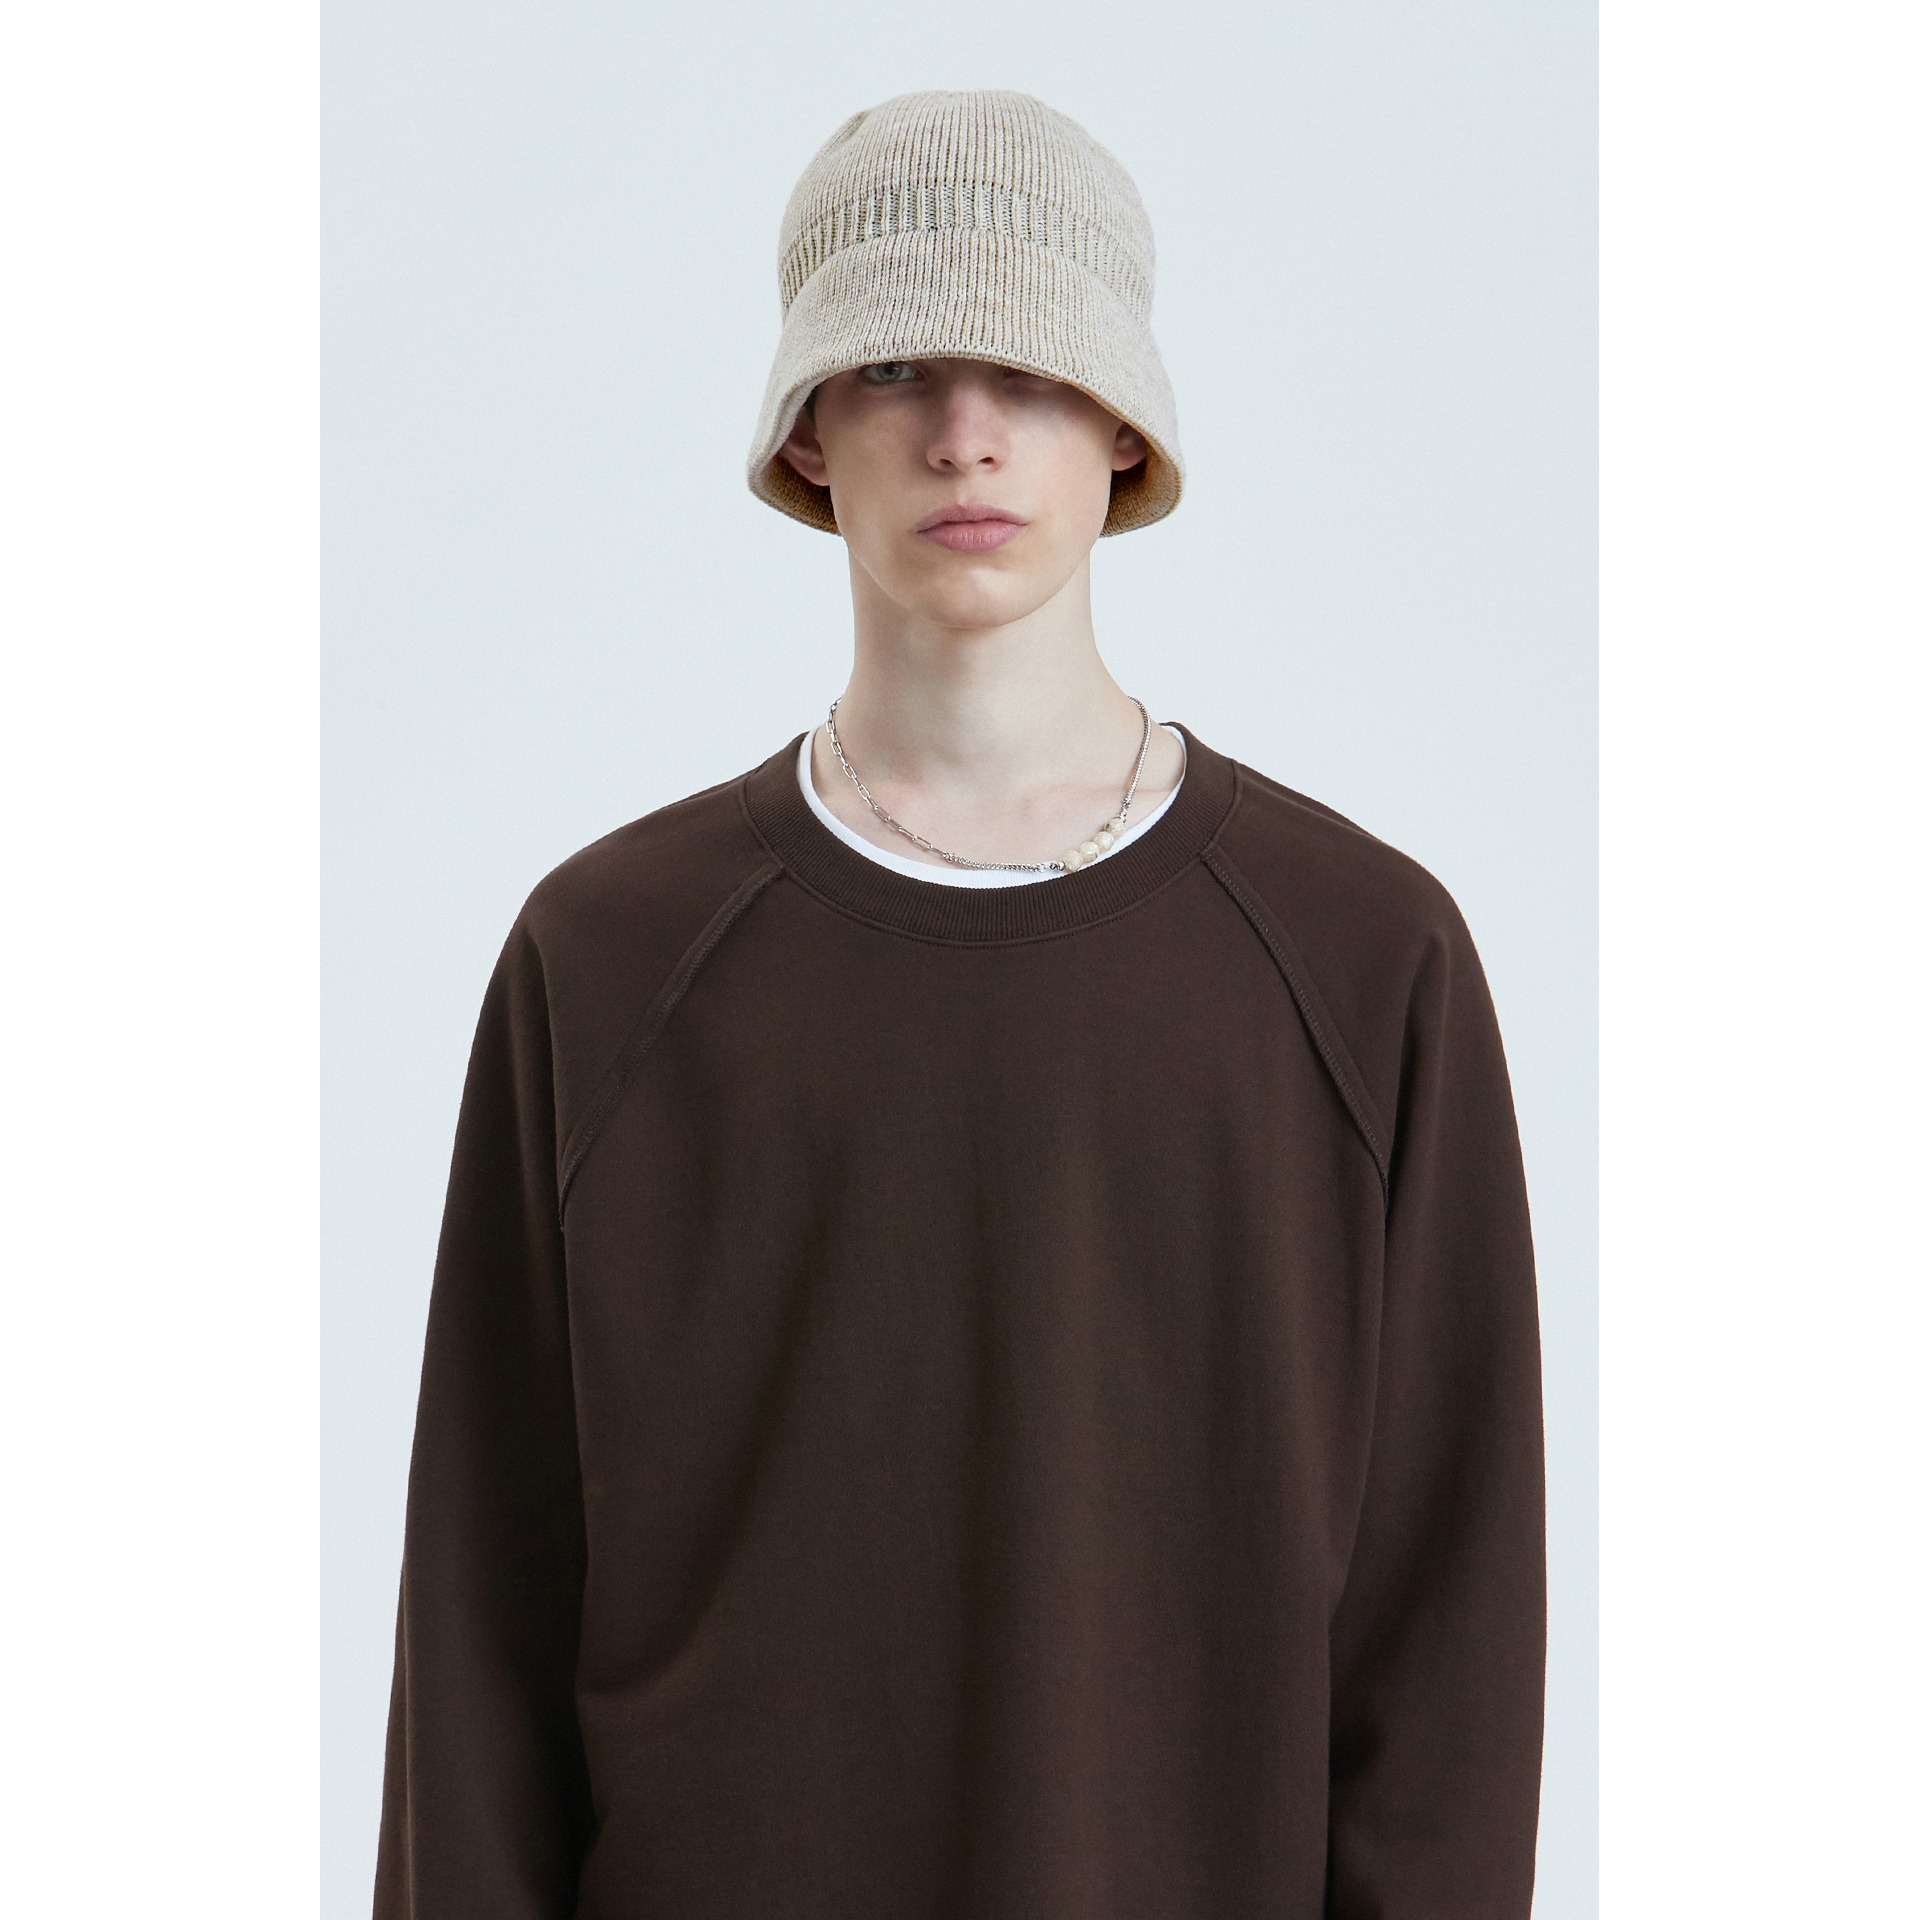 LIFUL KNIT BUCKET HAT beige